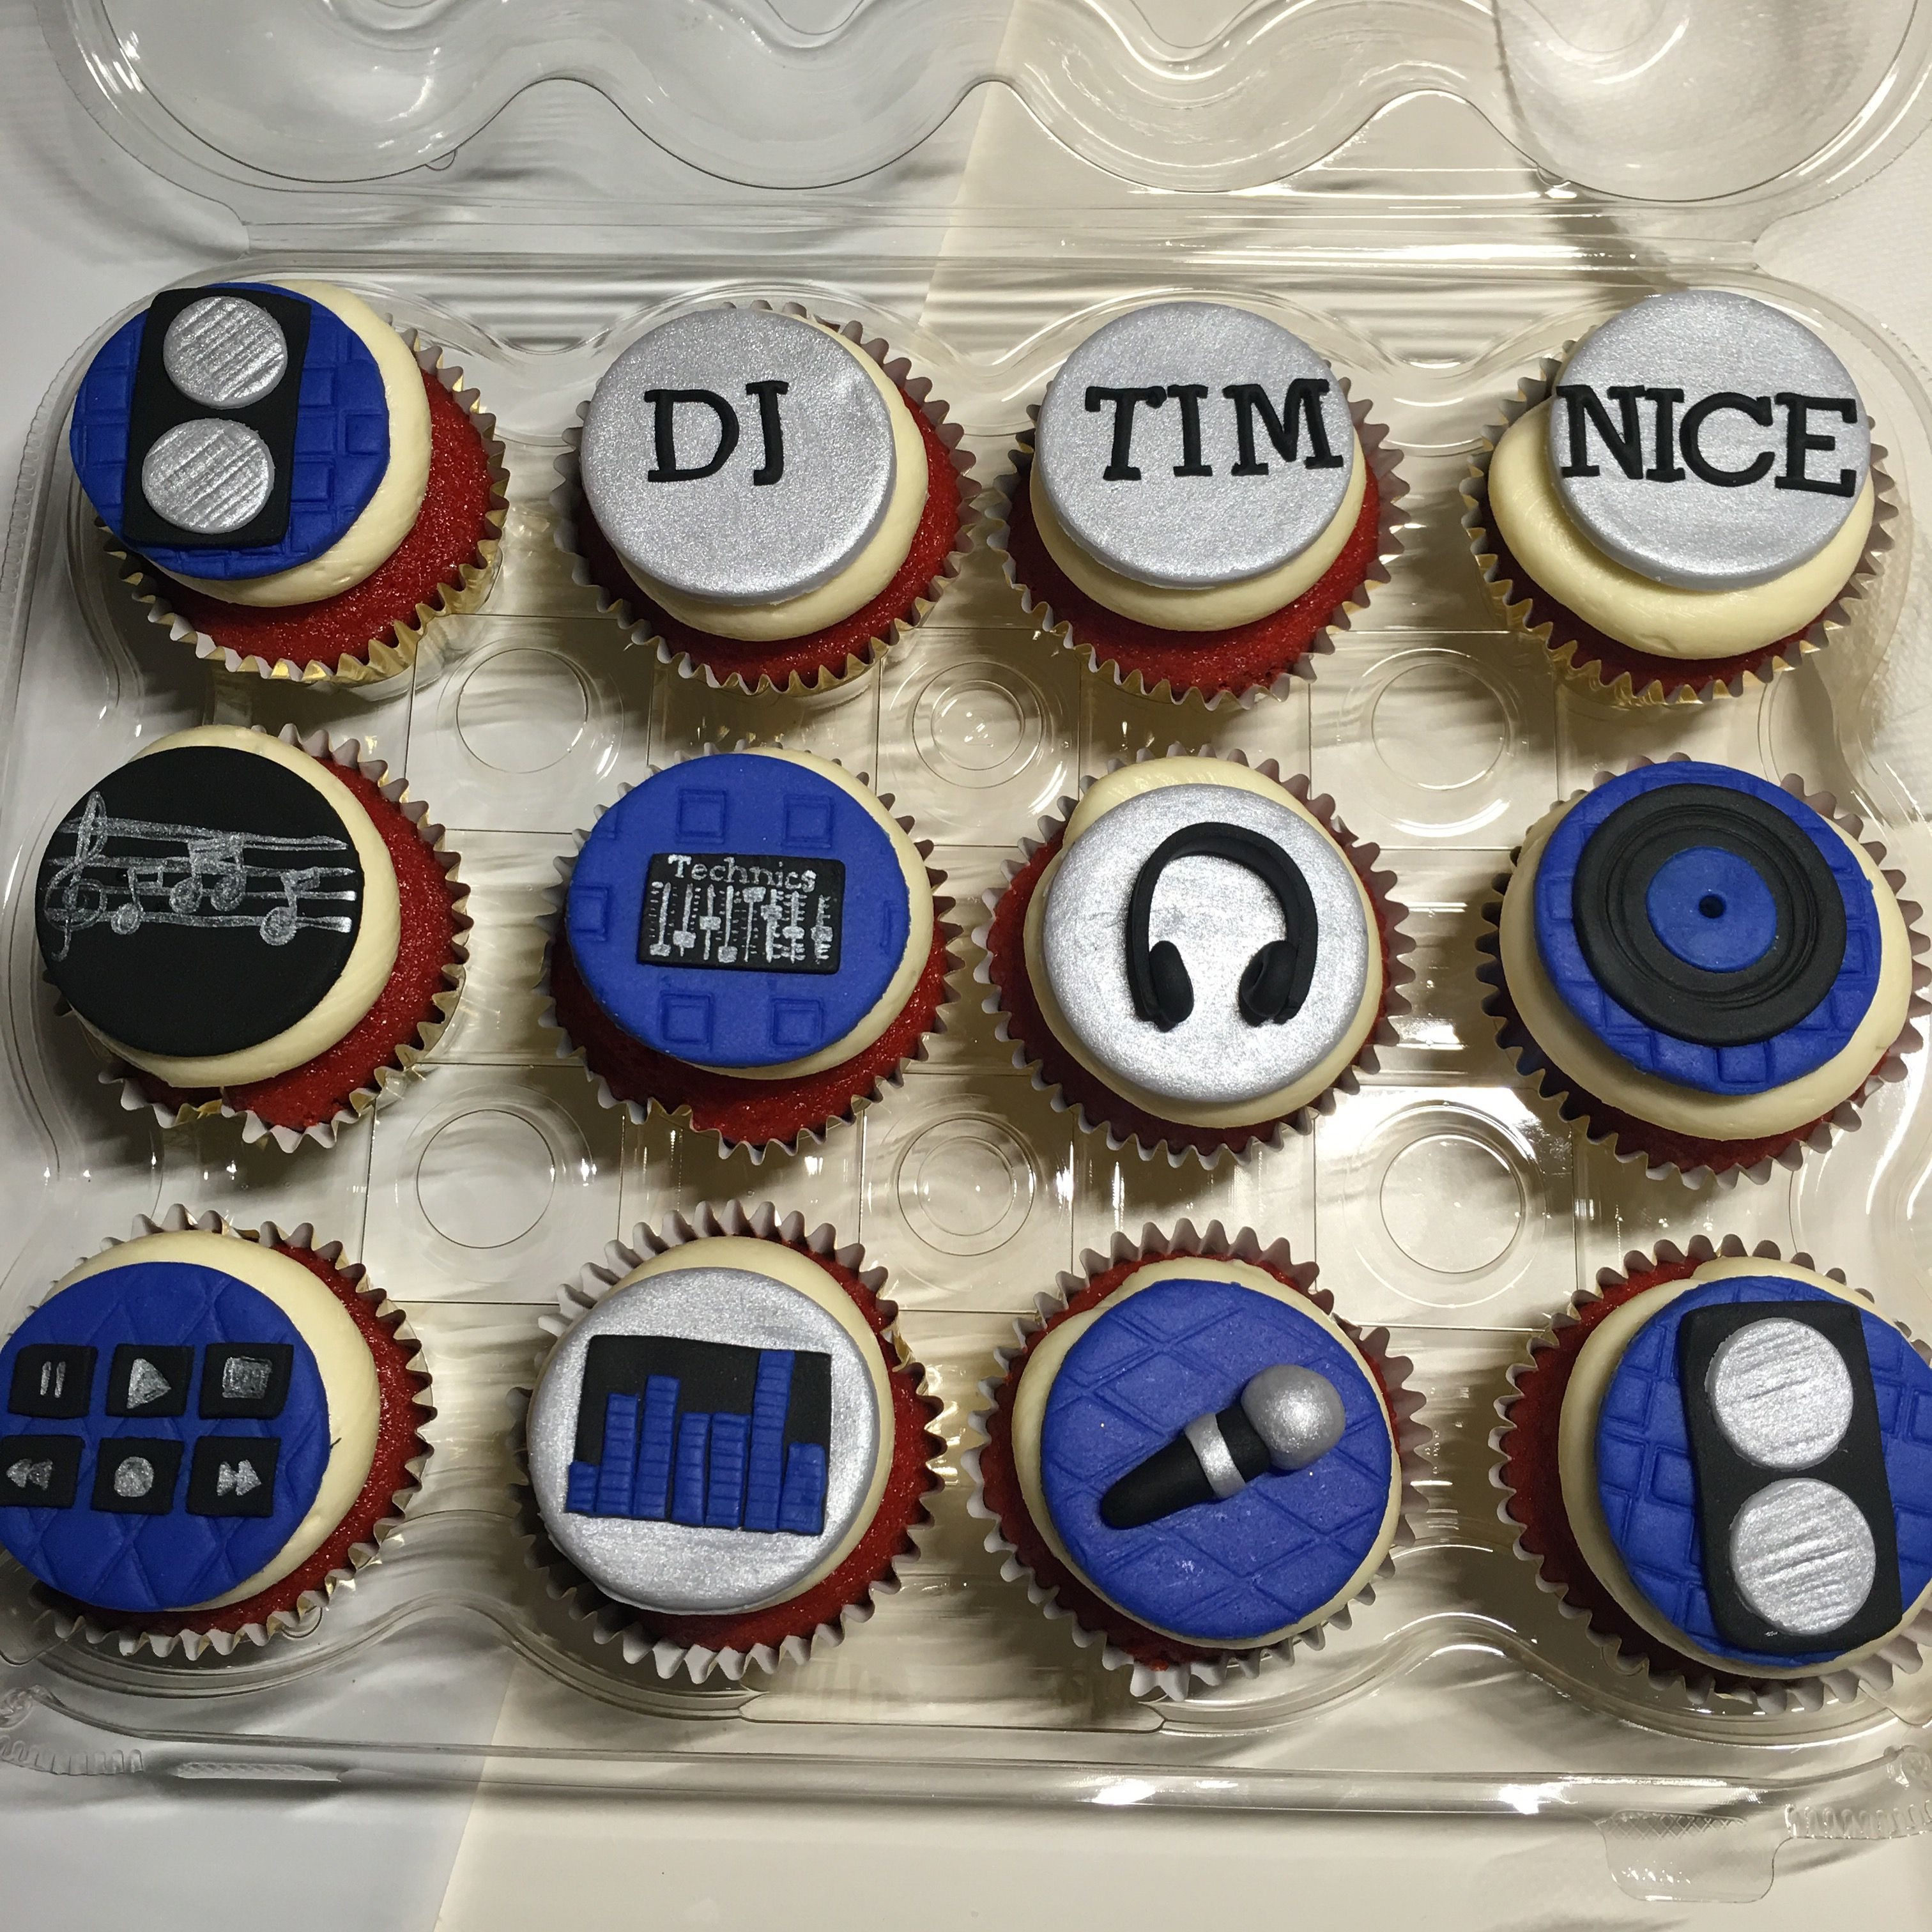 Dj music themed cupcakes the kitchen empress creations for Cupcake themed kitchen ideas